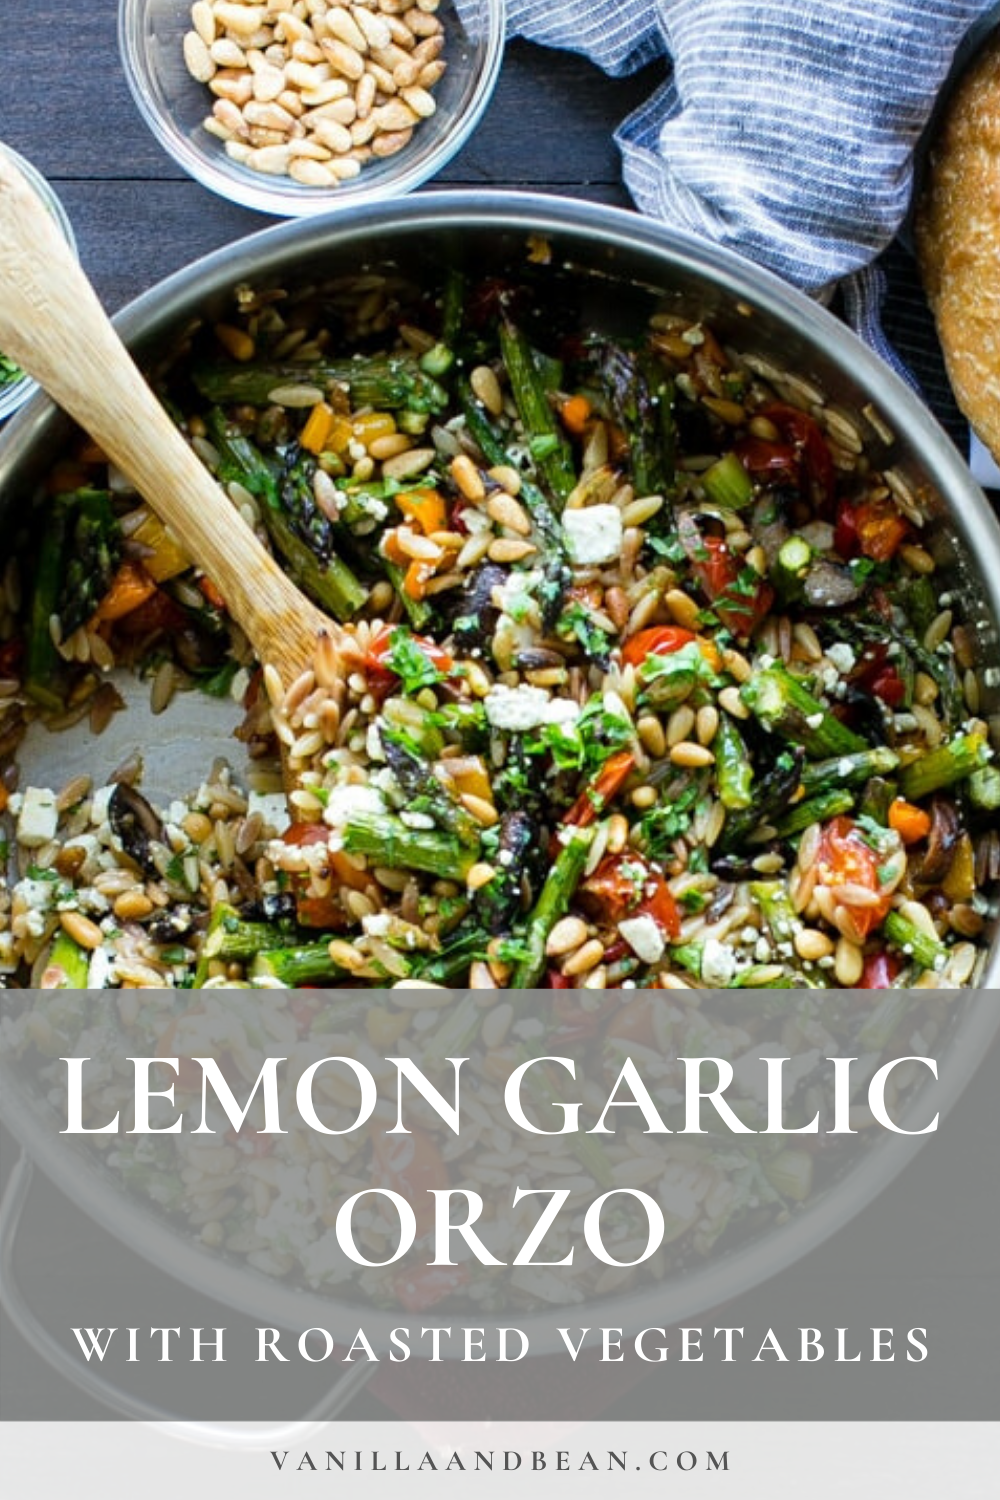 Photo of Lemon Garlic Orzo with Roasted Vegetables